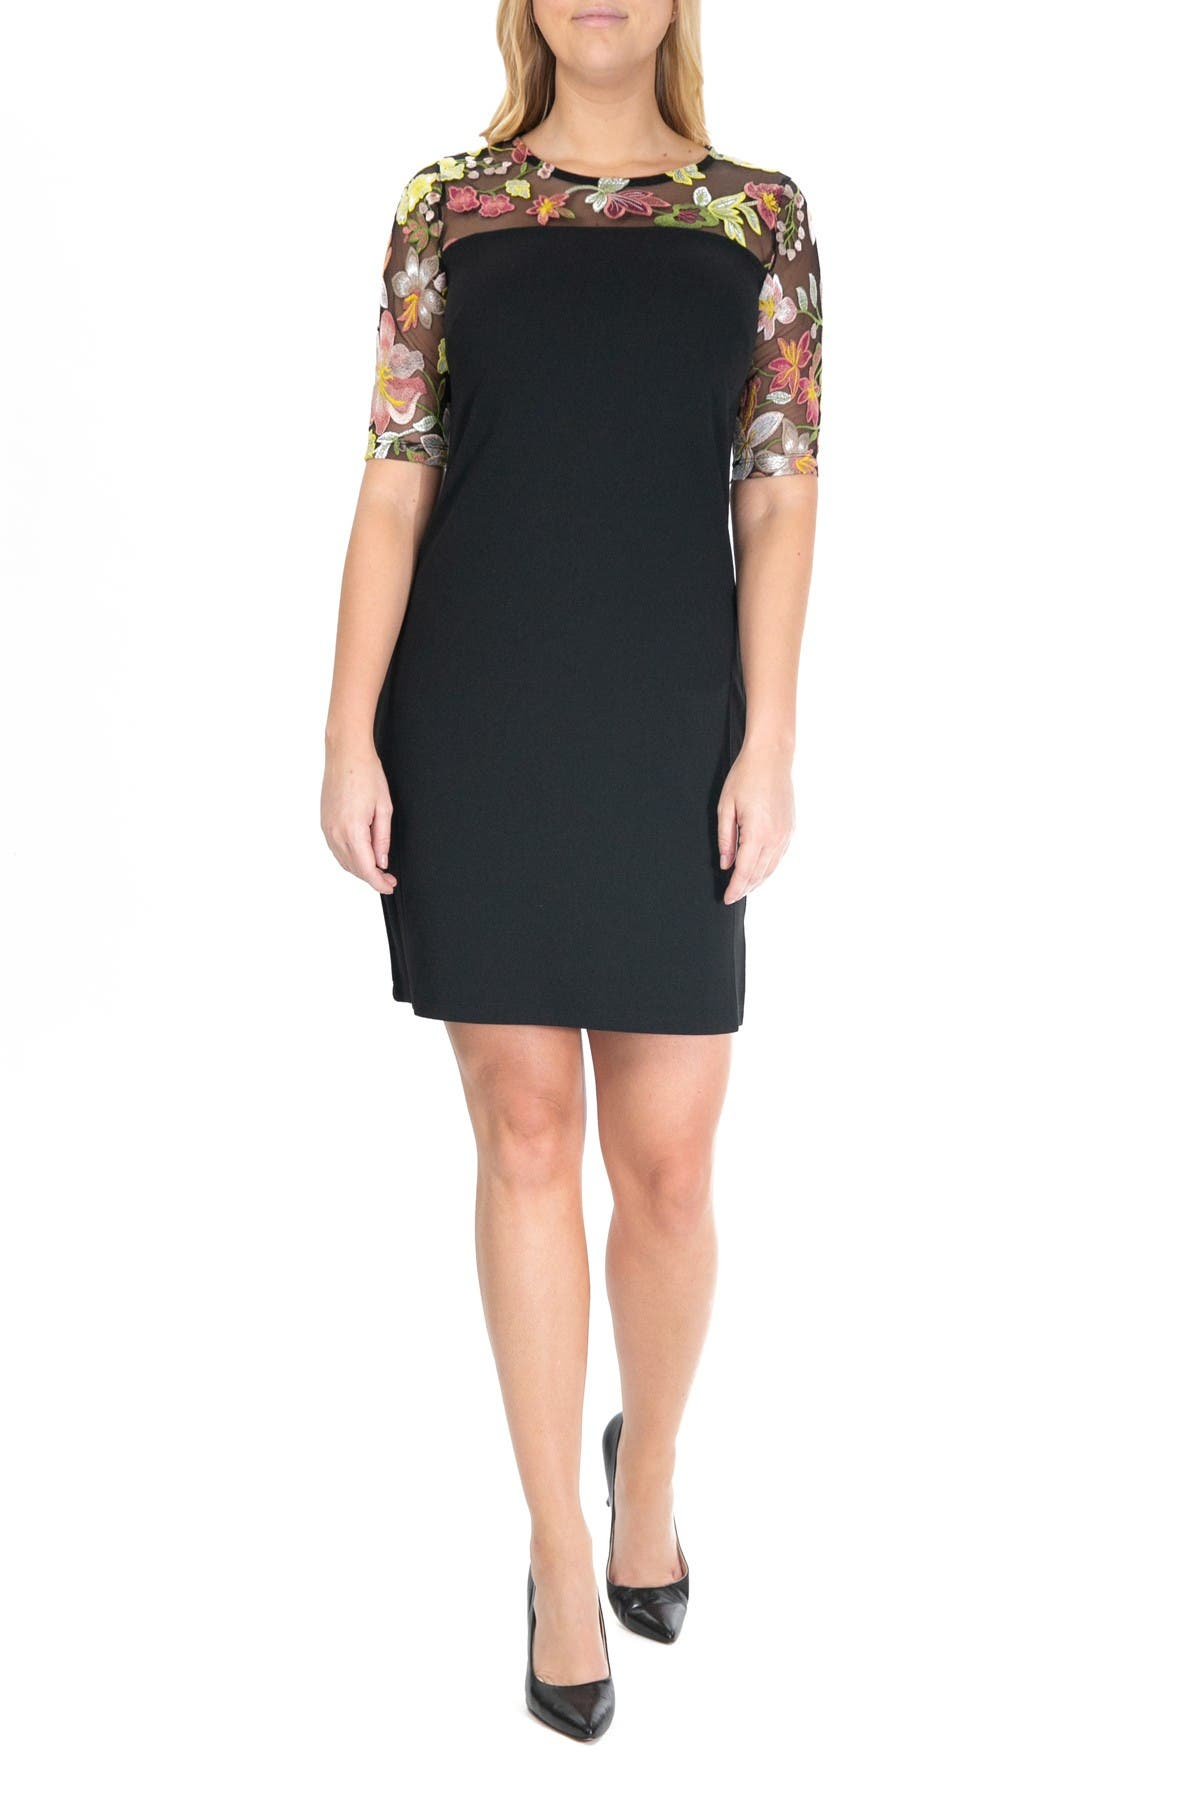 Image of Nina Leonard Embroidered Lace Yoke Dress